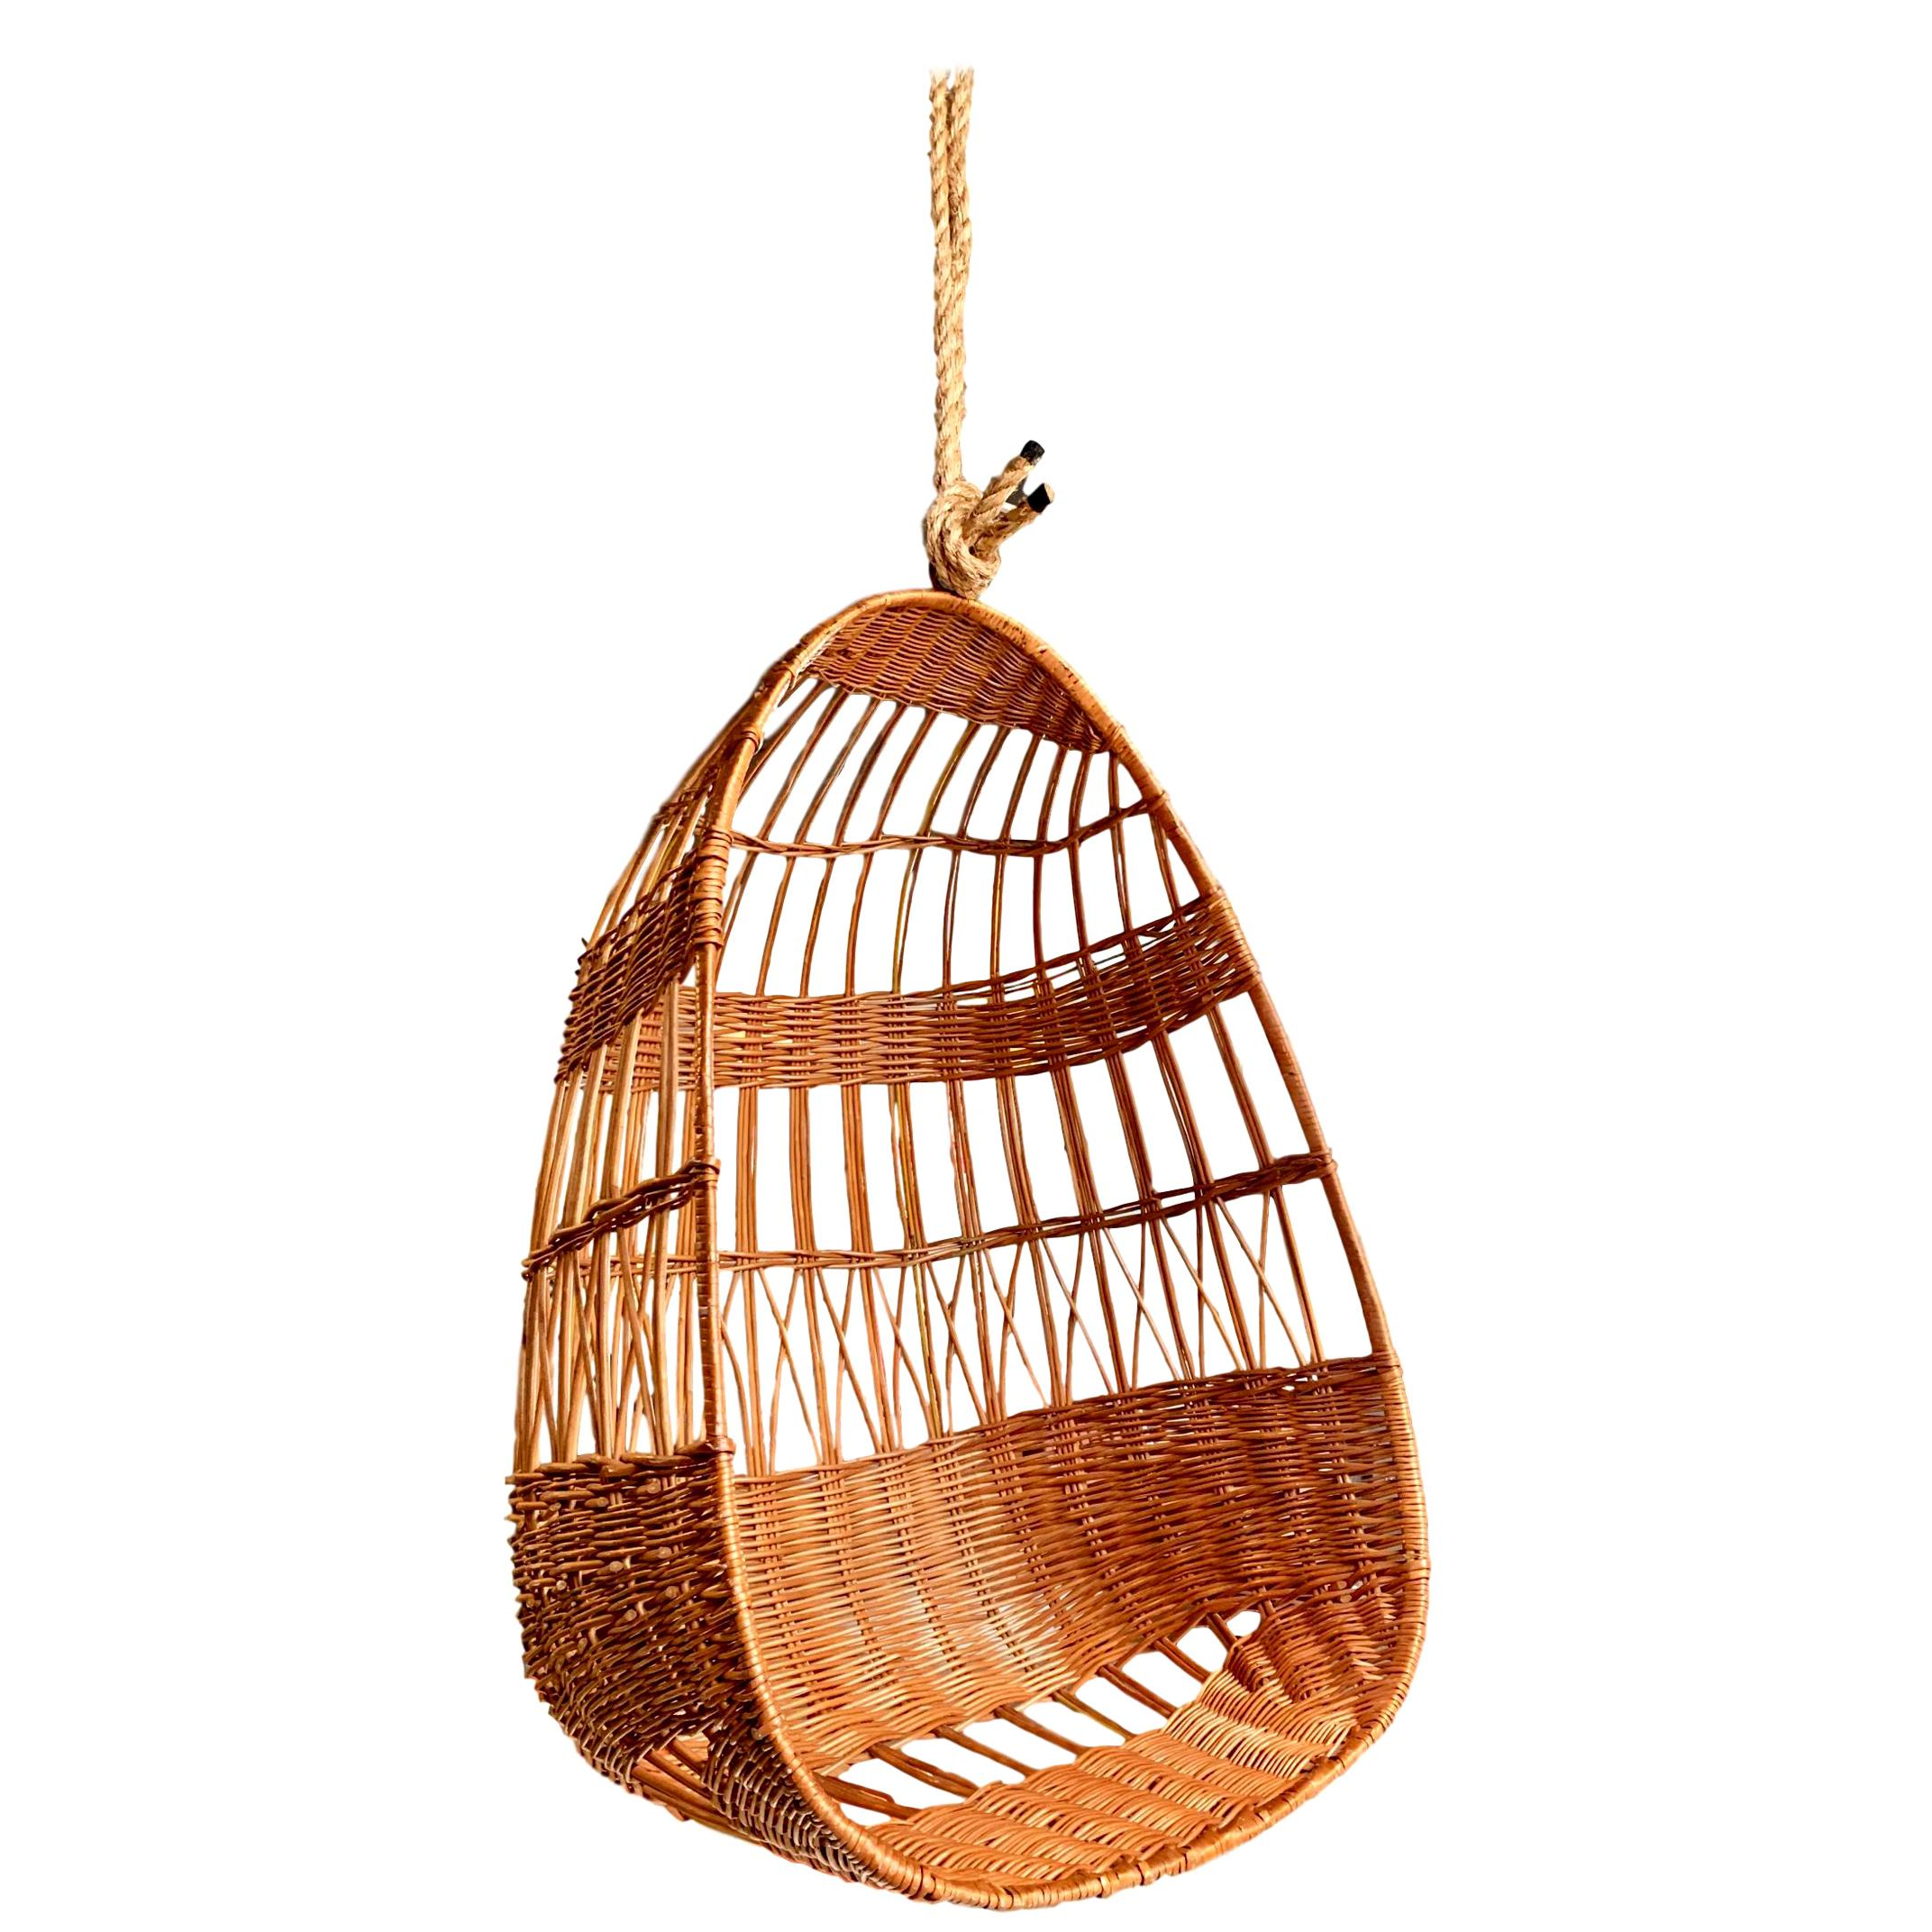 Rattan And Wicker Hanging Chair